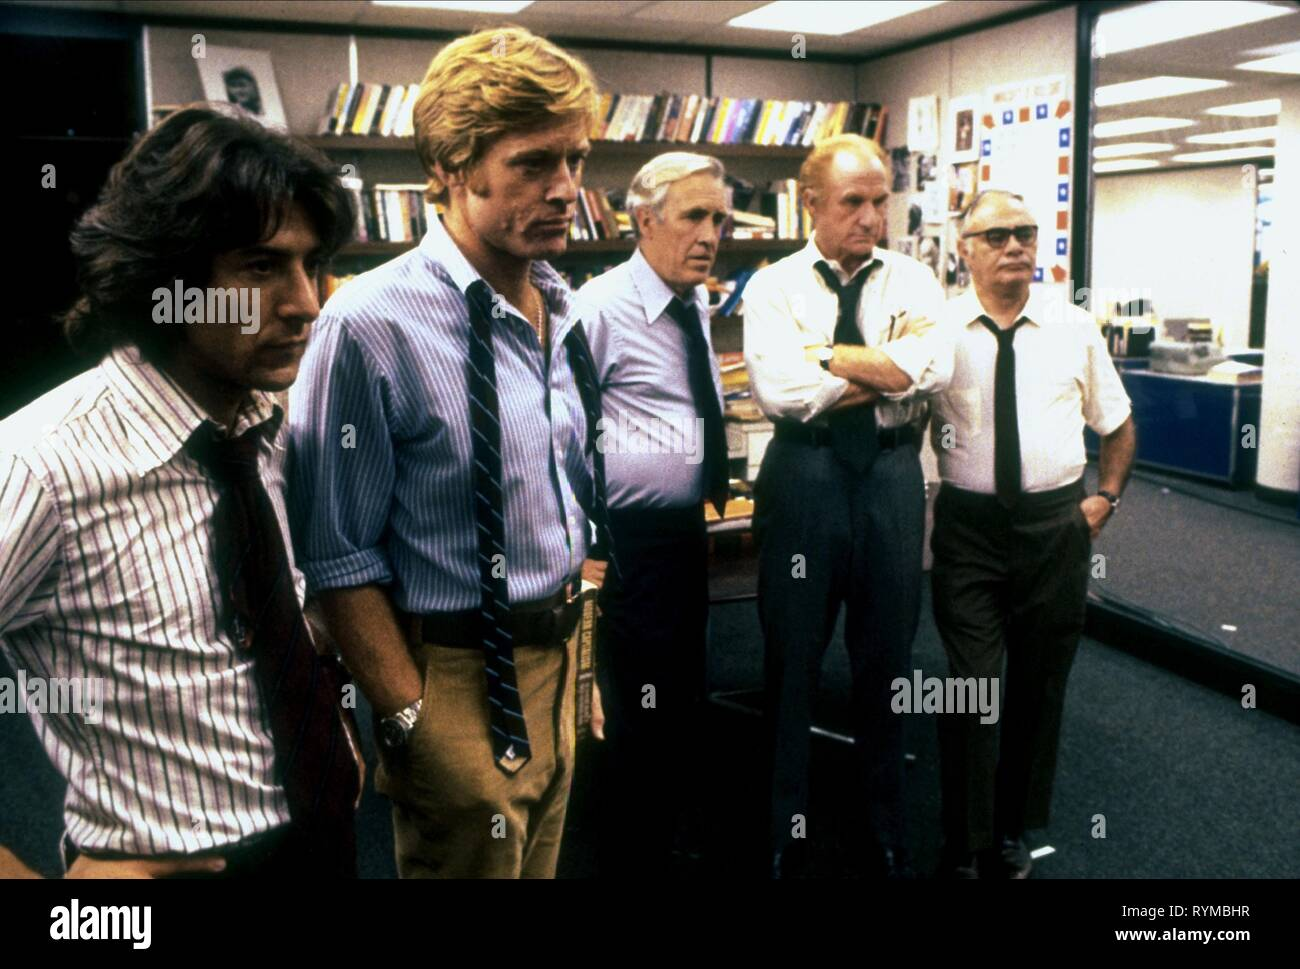 HOFFMAN,REDFORD,ROBARDS,WARDEN,BALSAM, ALL THE PRESIDENT'S MEN, 1976 - Stock Image